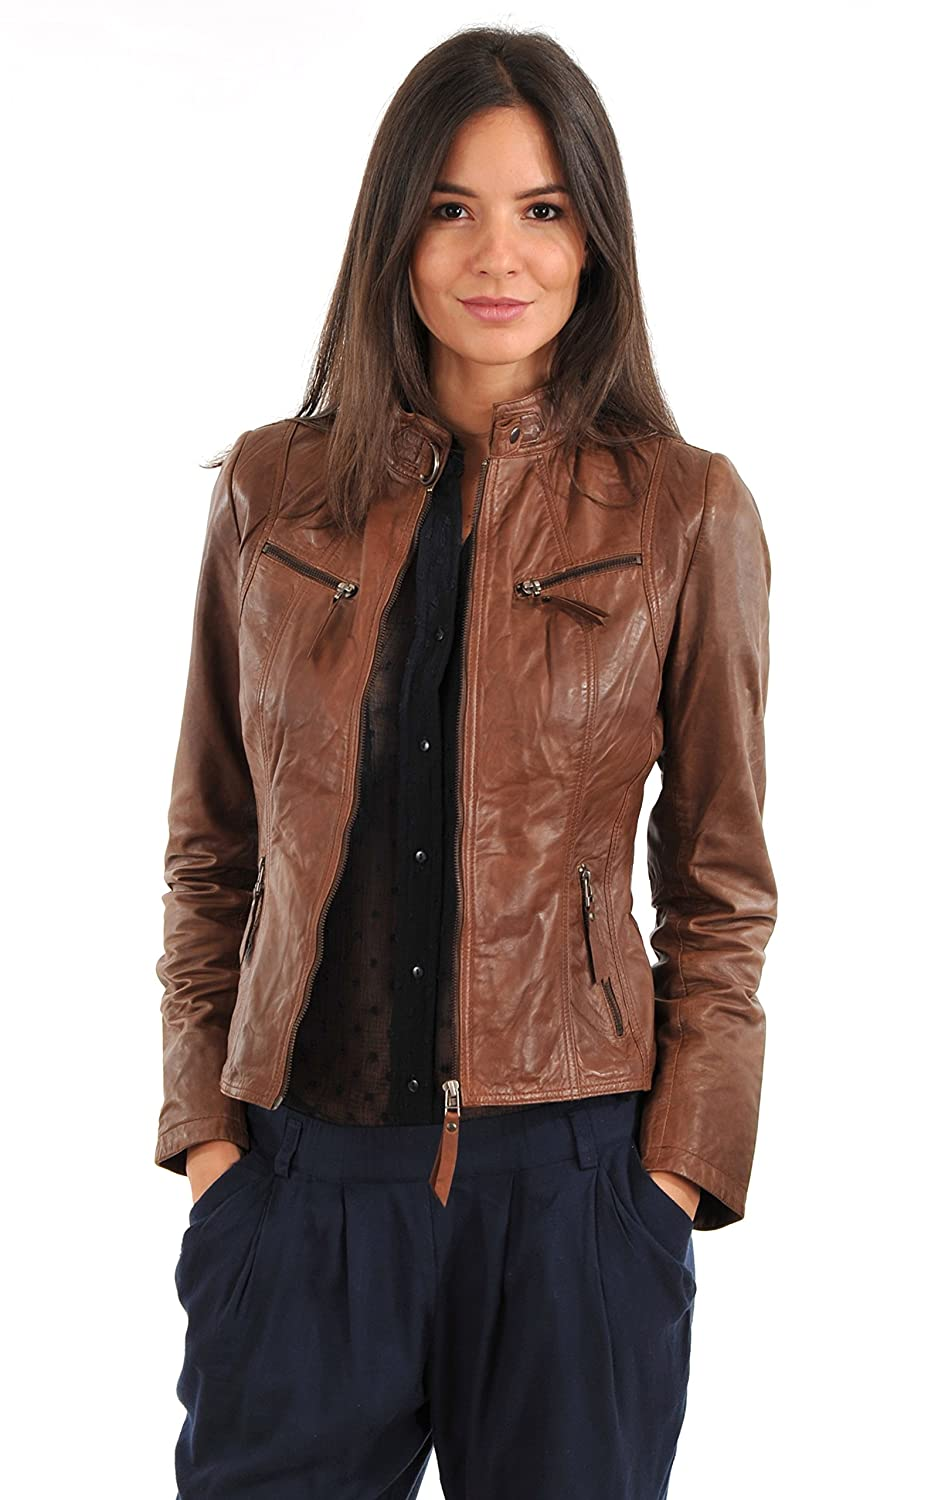 Brown Zoha Collection Women's Lambskin Leather Jacket Bomber Biker Motorcycles Jacket